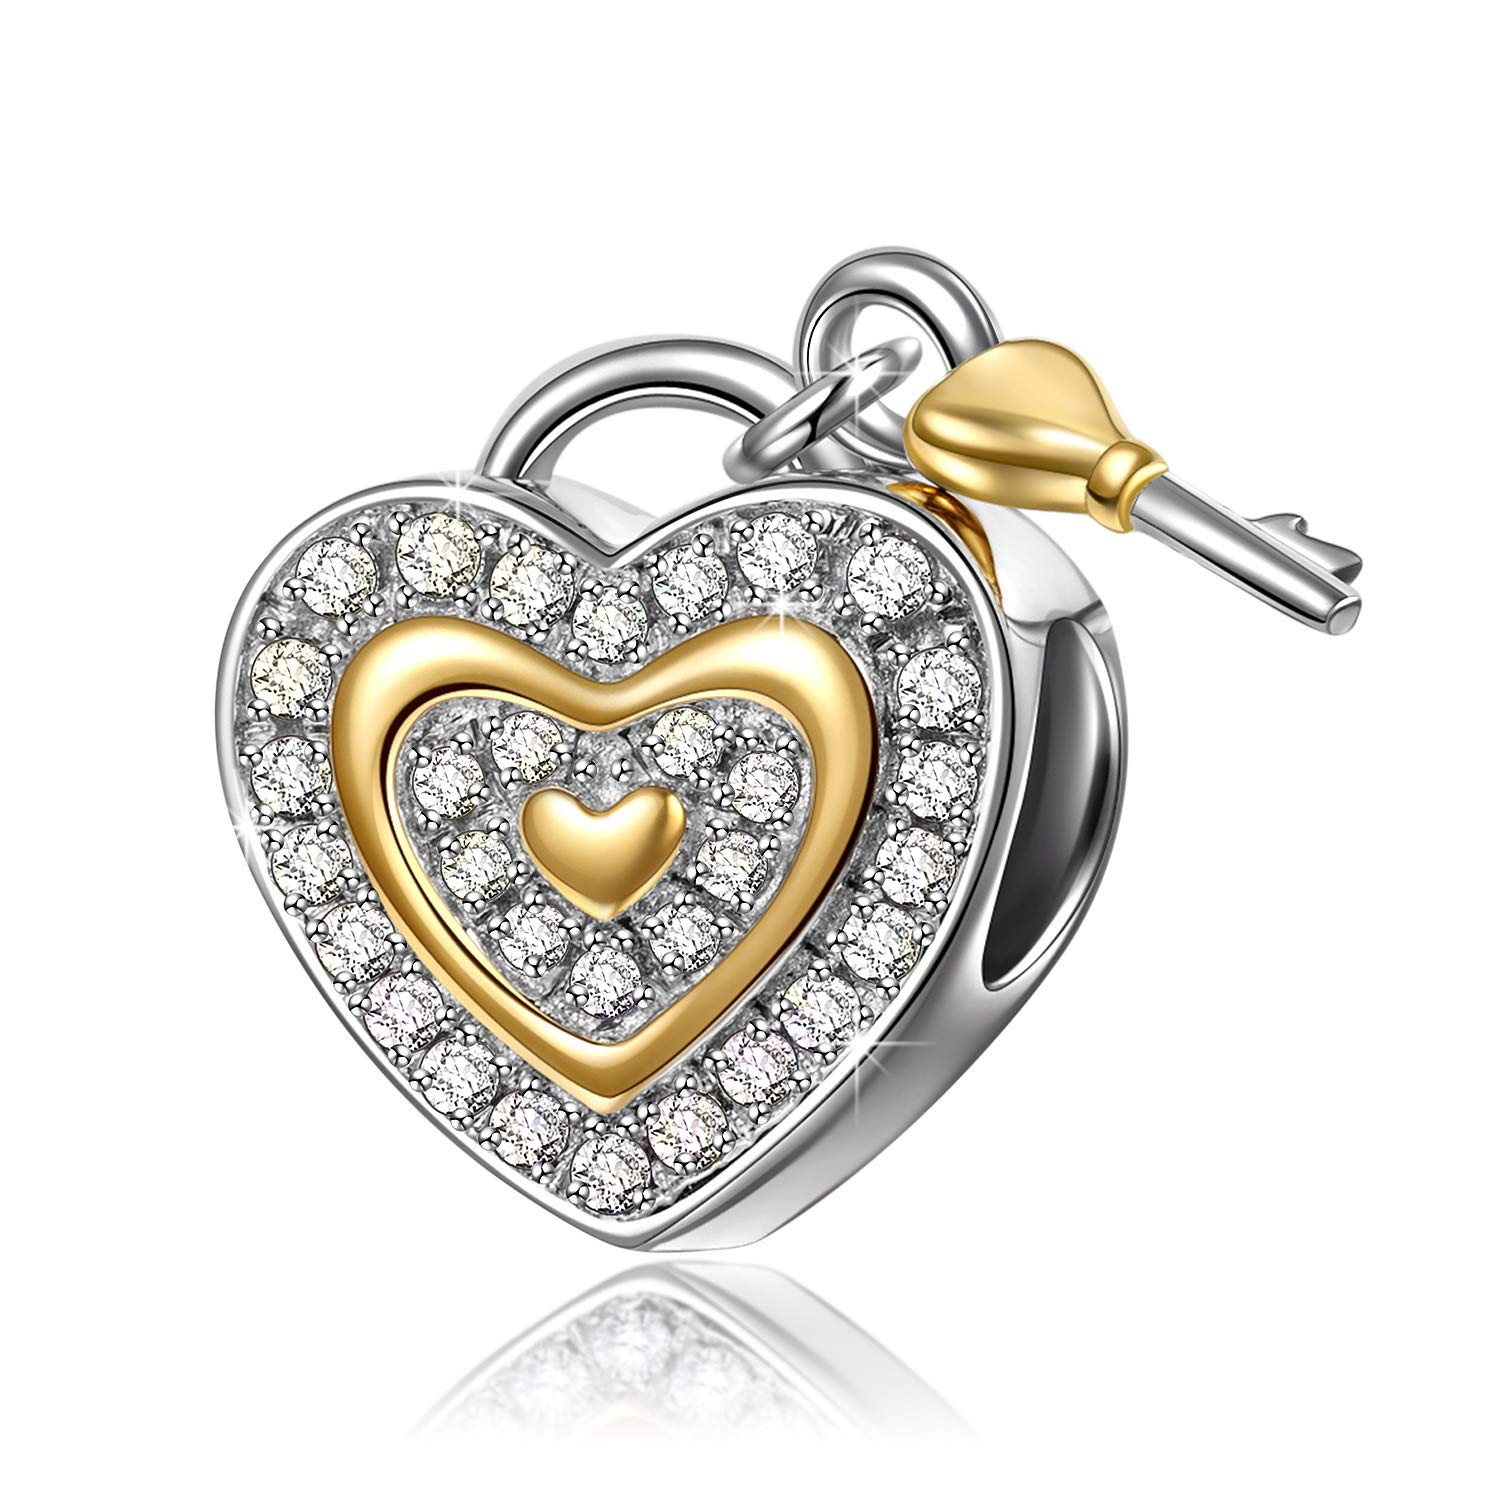 NINAQUEEN Valentines Gifts for Women 925 Sterling Silver Charms with Fine Gifts Packing Suitable for Bracelet Gold Plated Heart Key Beads Engraved Love You Forever